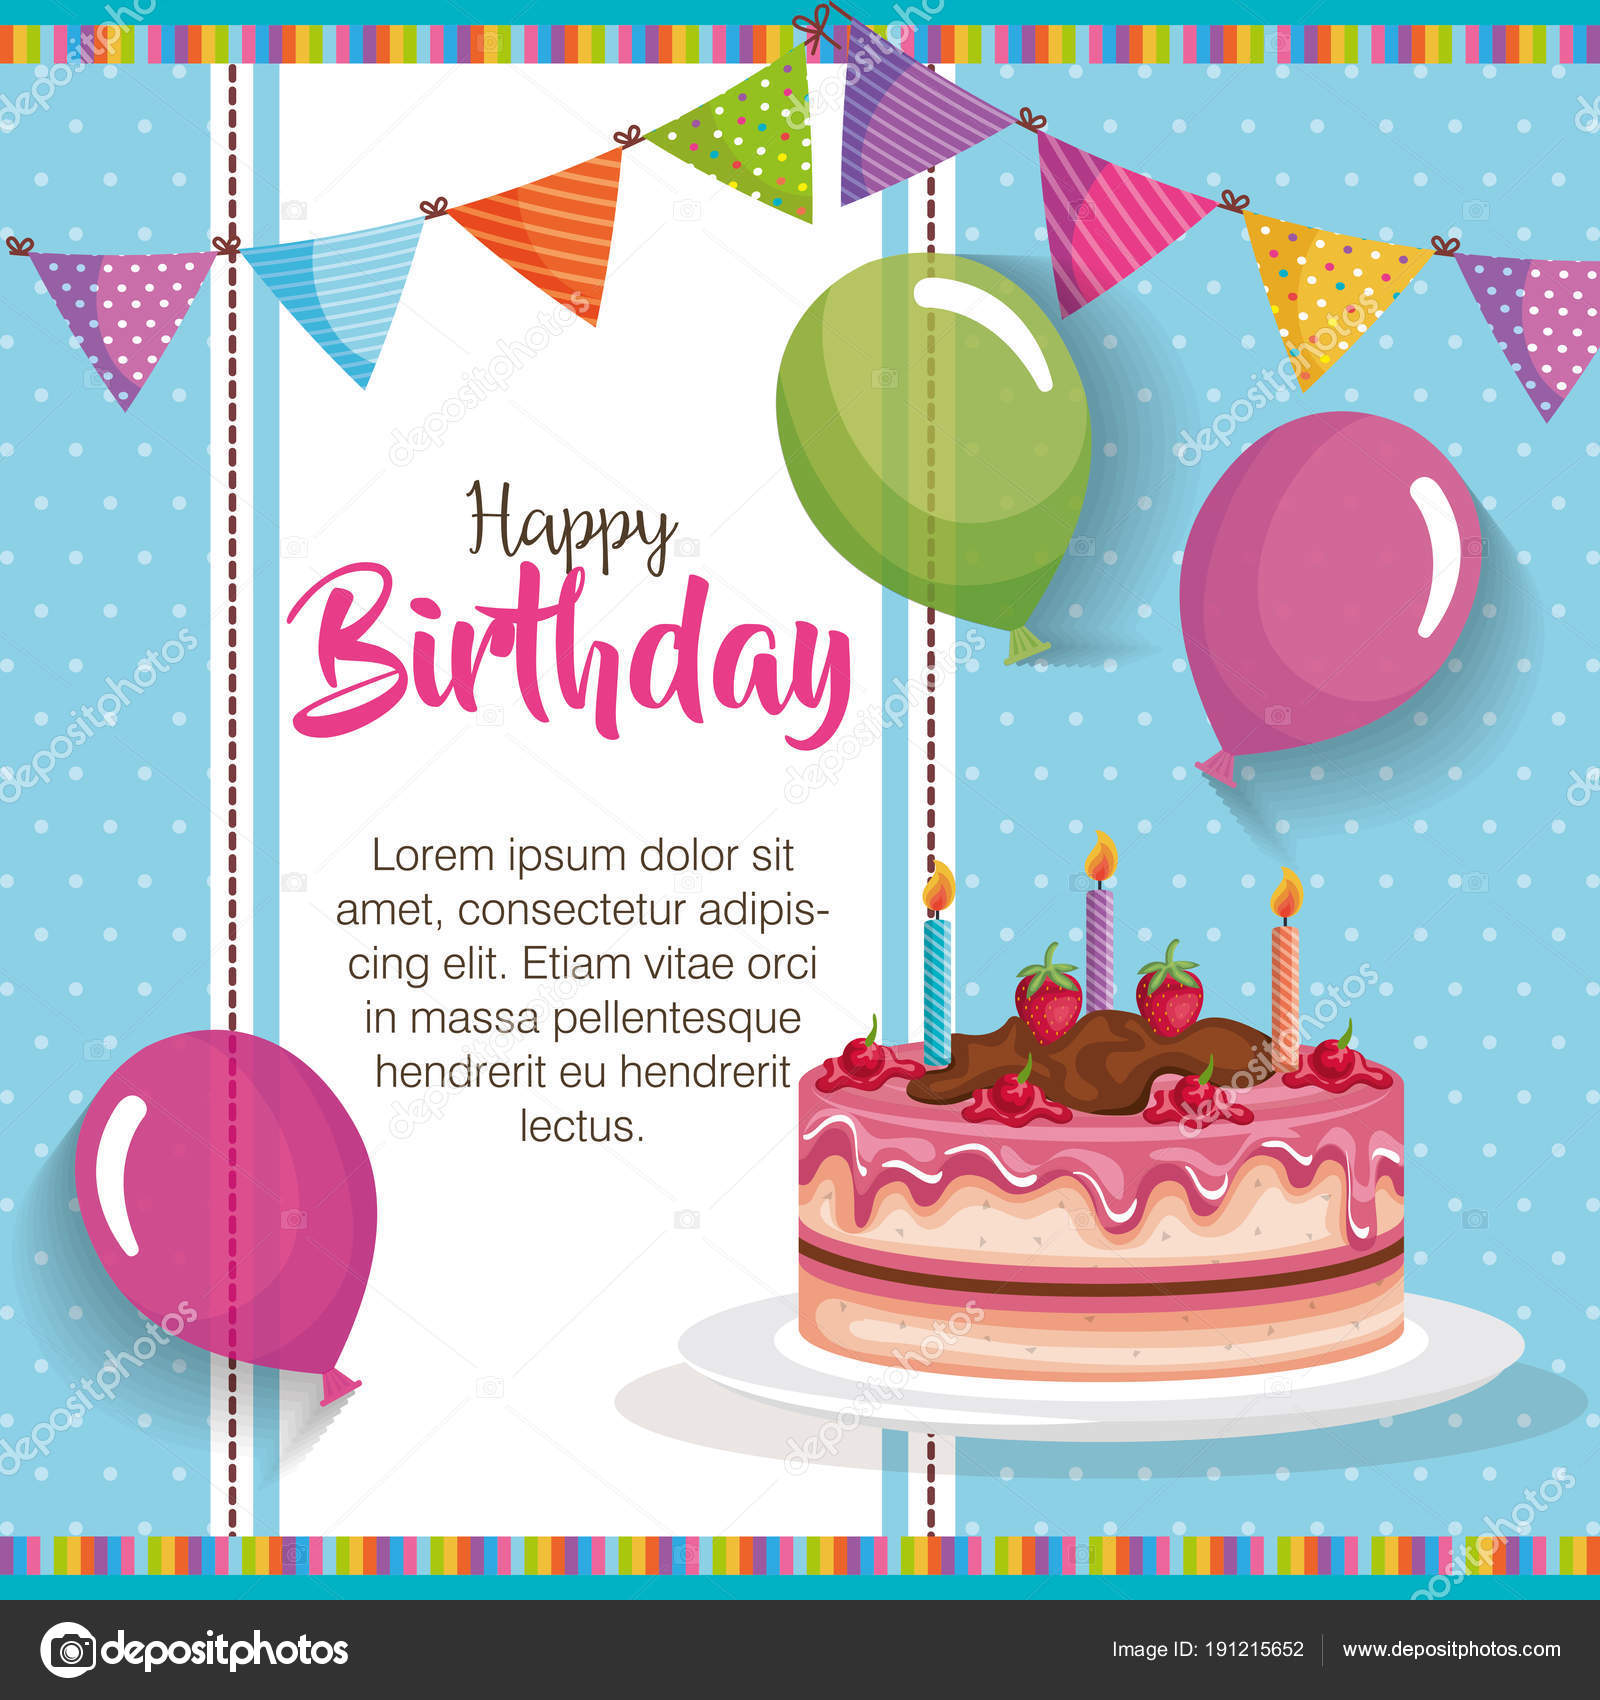 Happy Birthday Cake With Balloons Air Celebration Card Stock